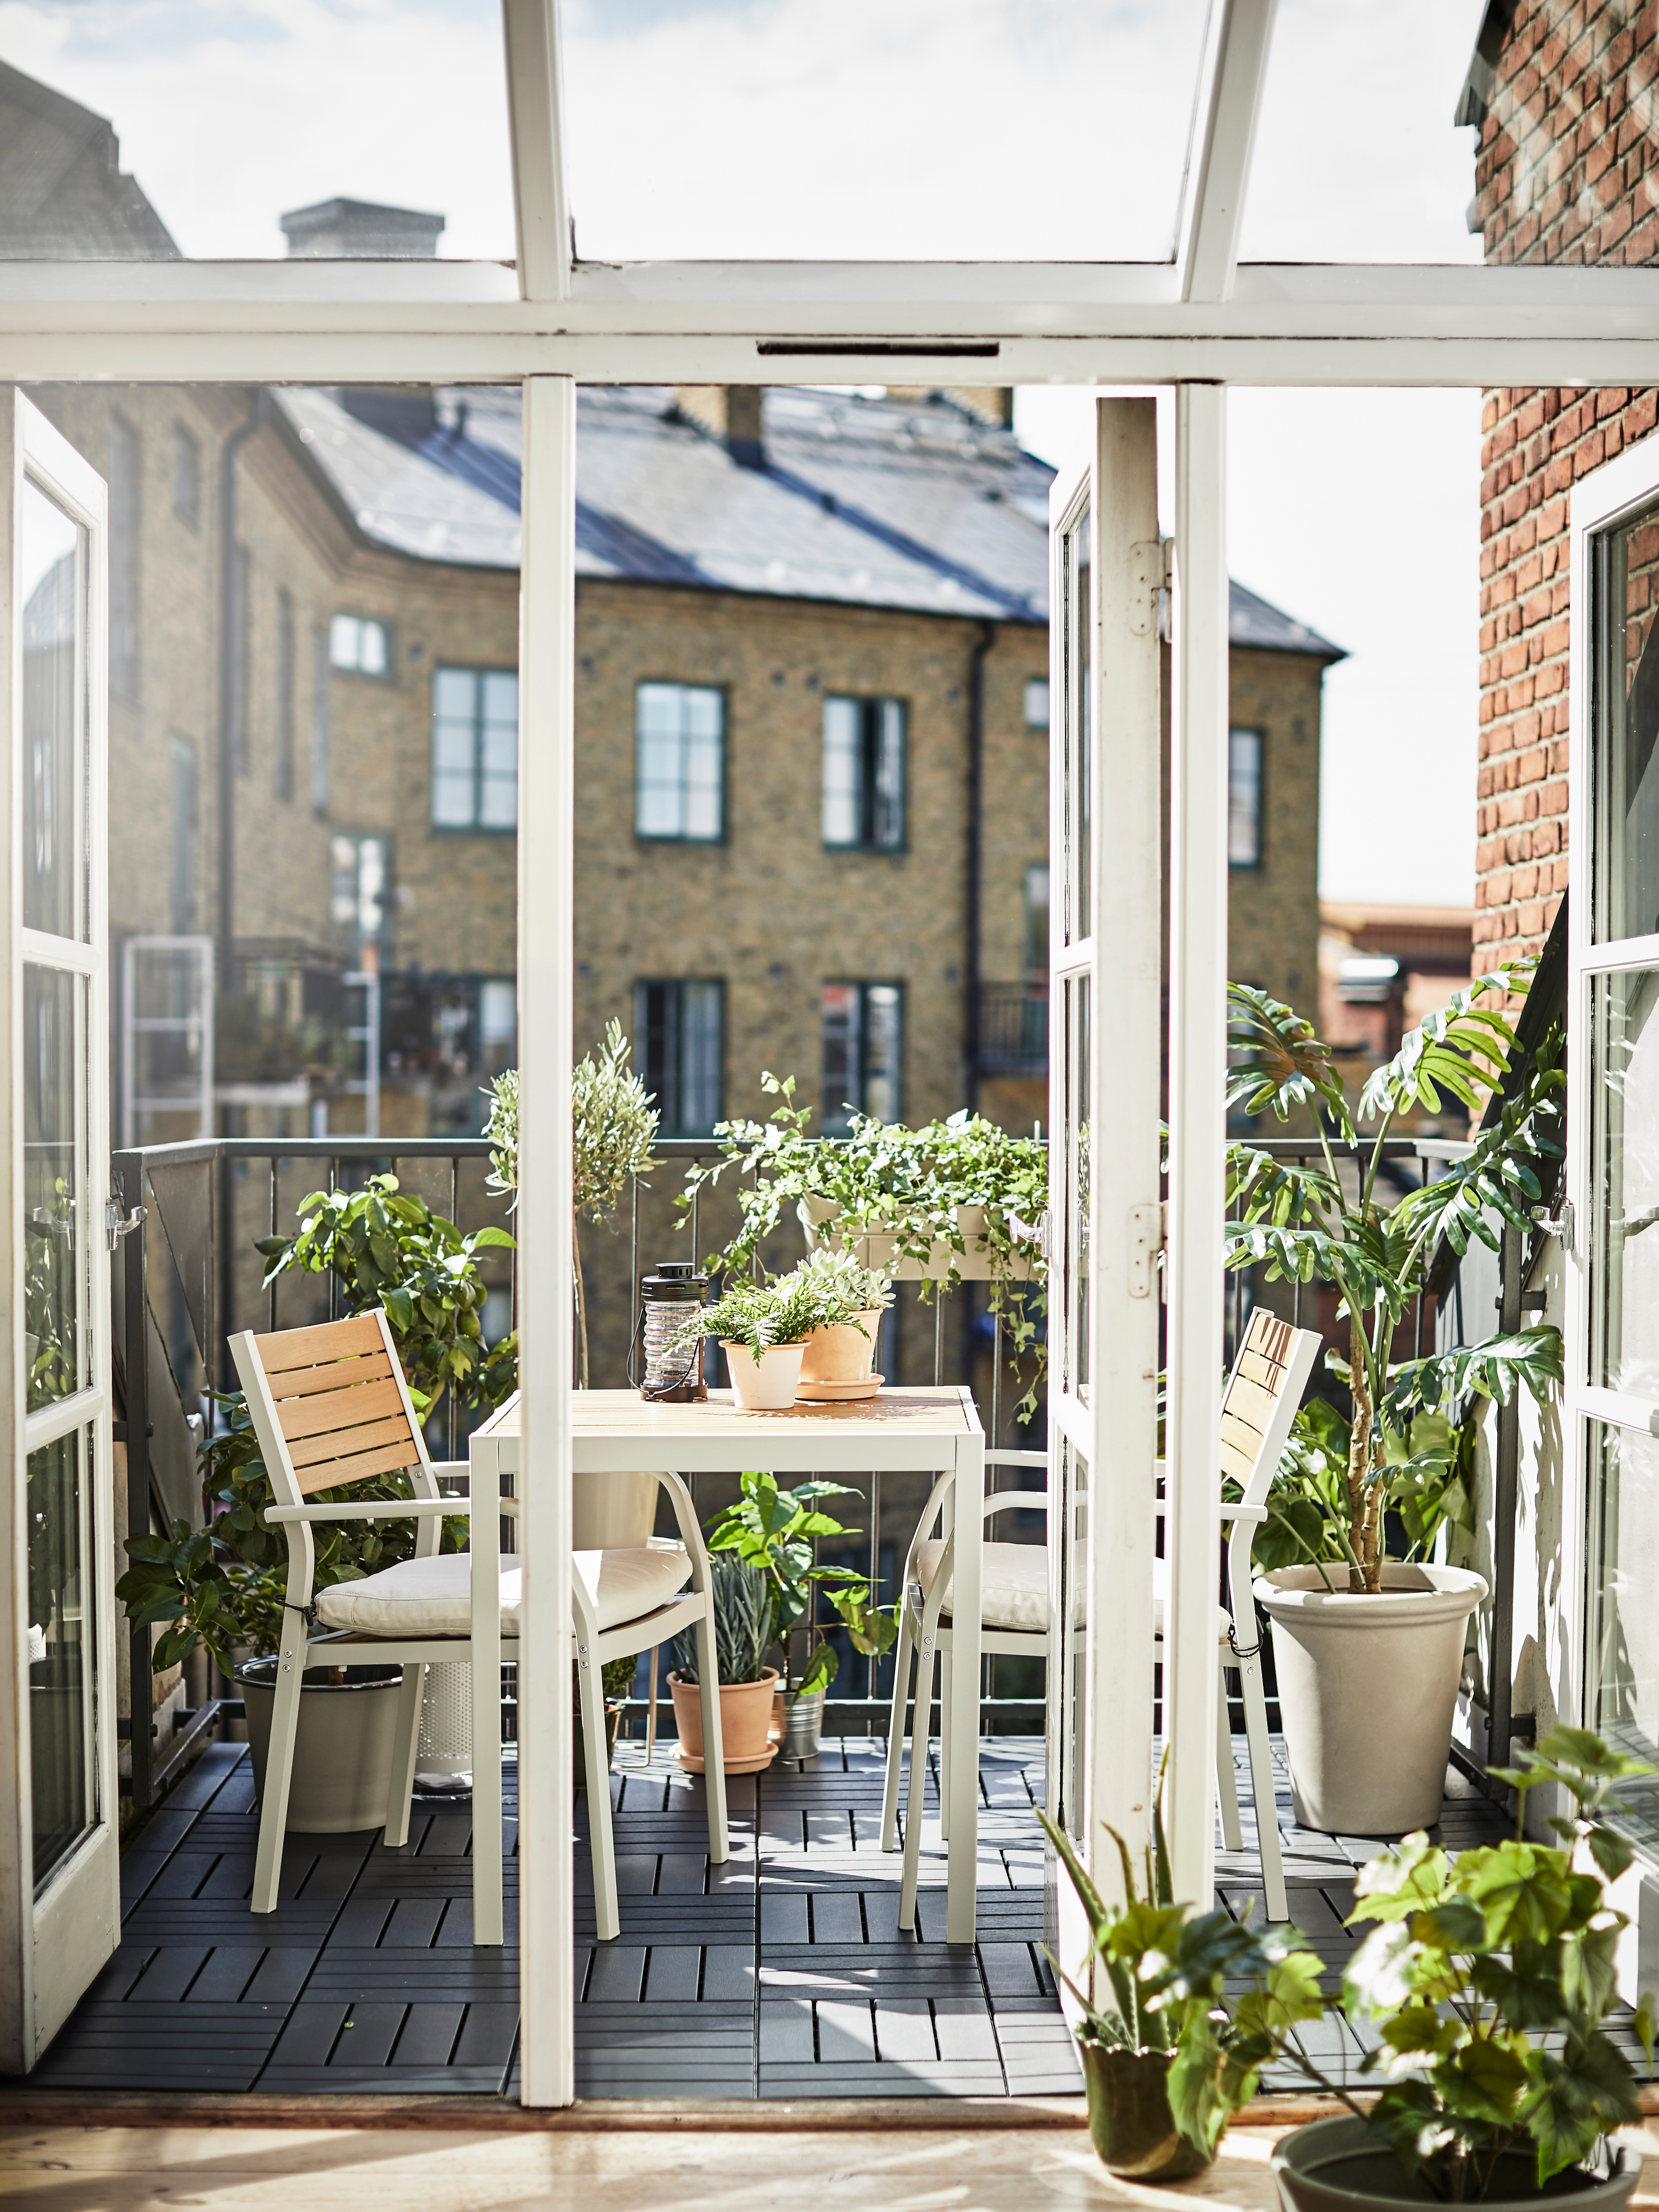 Open balcony with multiple plants, CHILIPEPPAR and MUSKTOBLOMMA plant pots, two white chairs, and a white MELLTORP table.